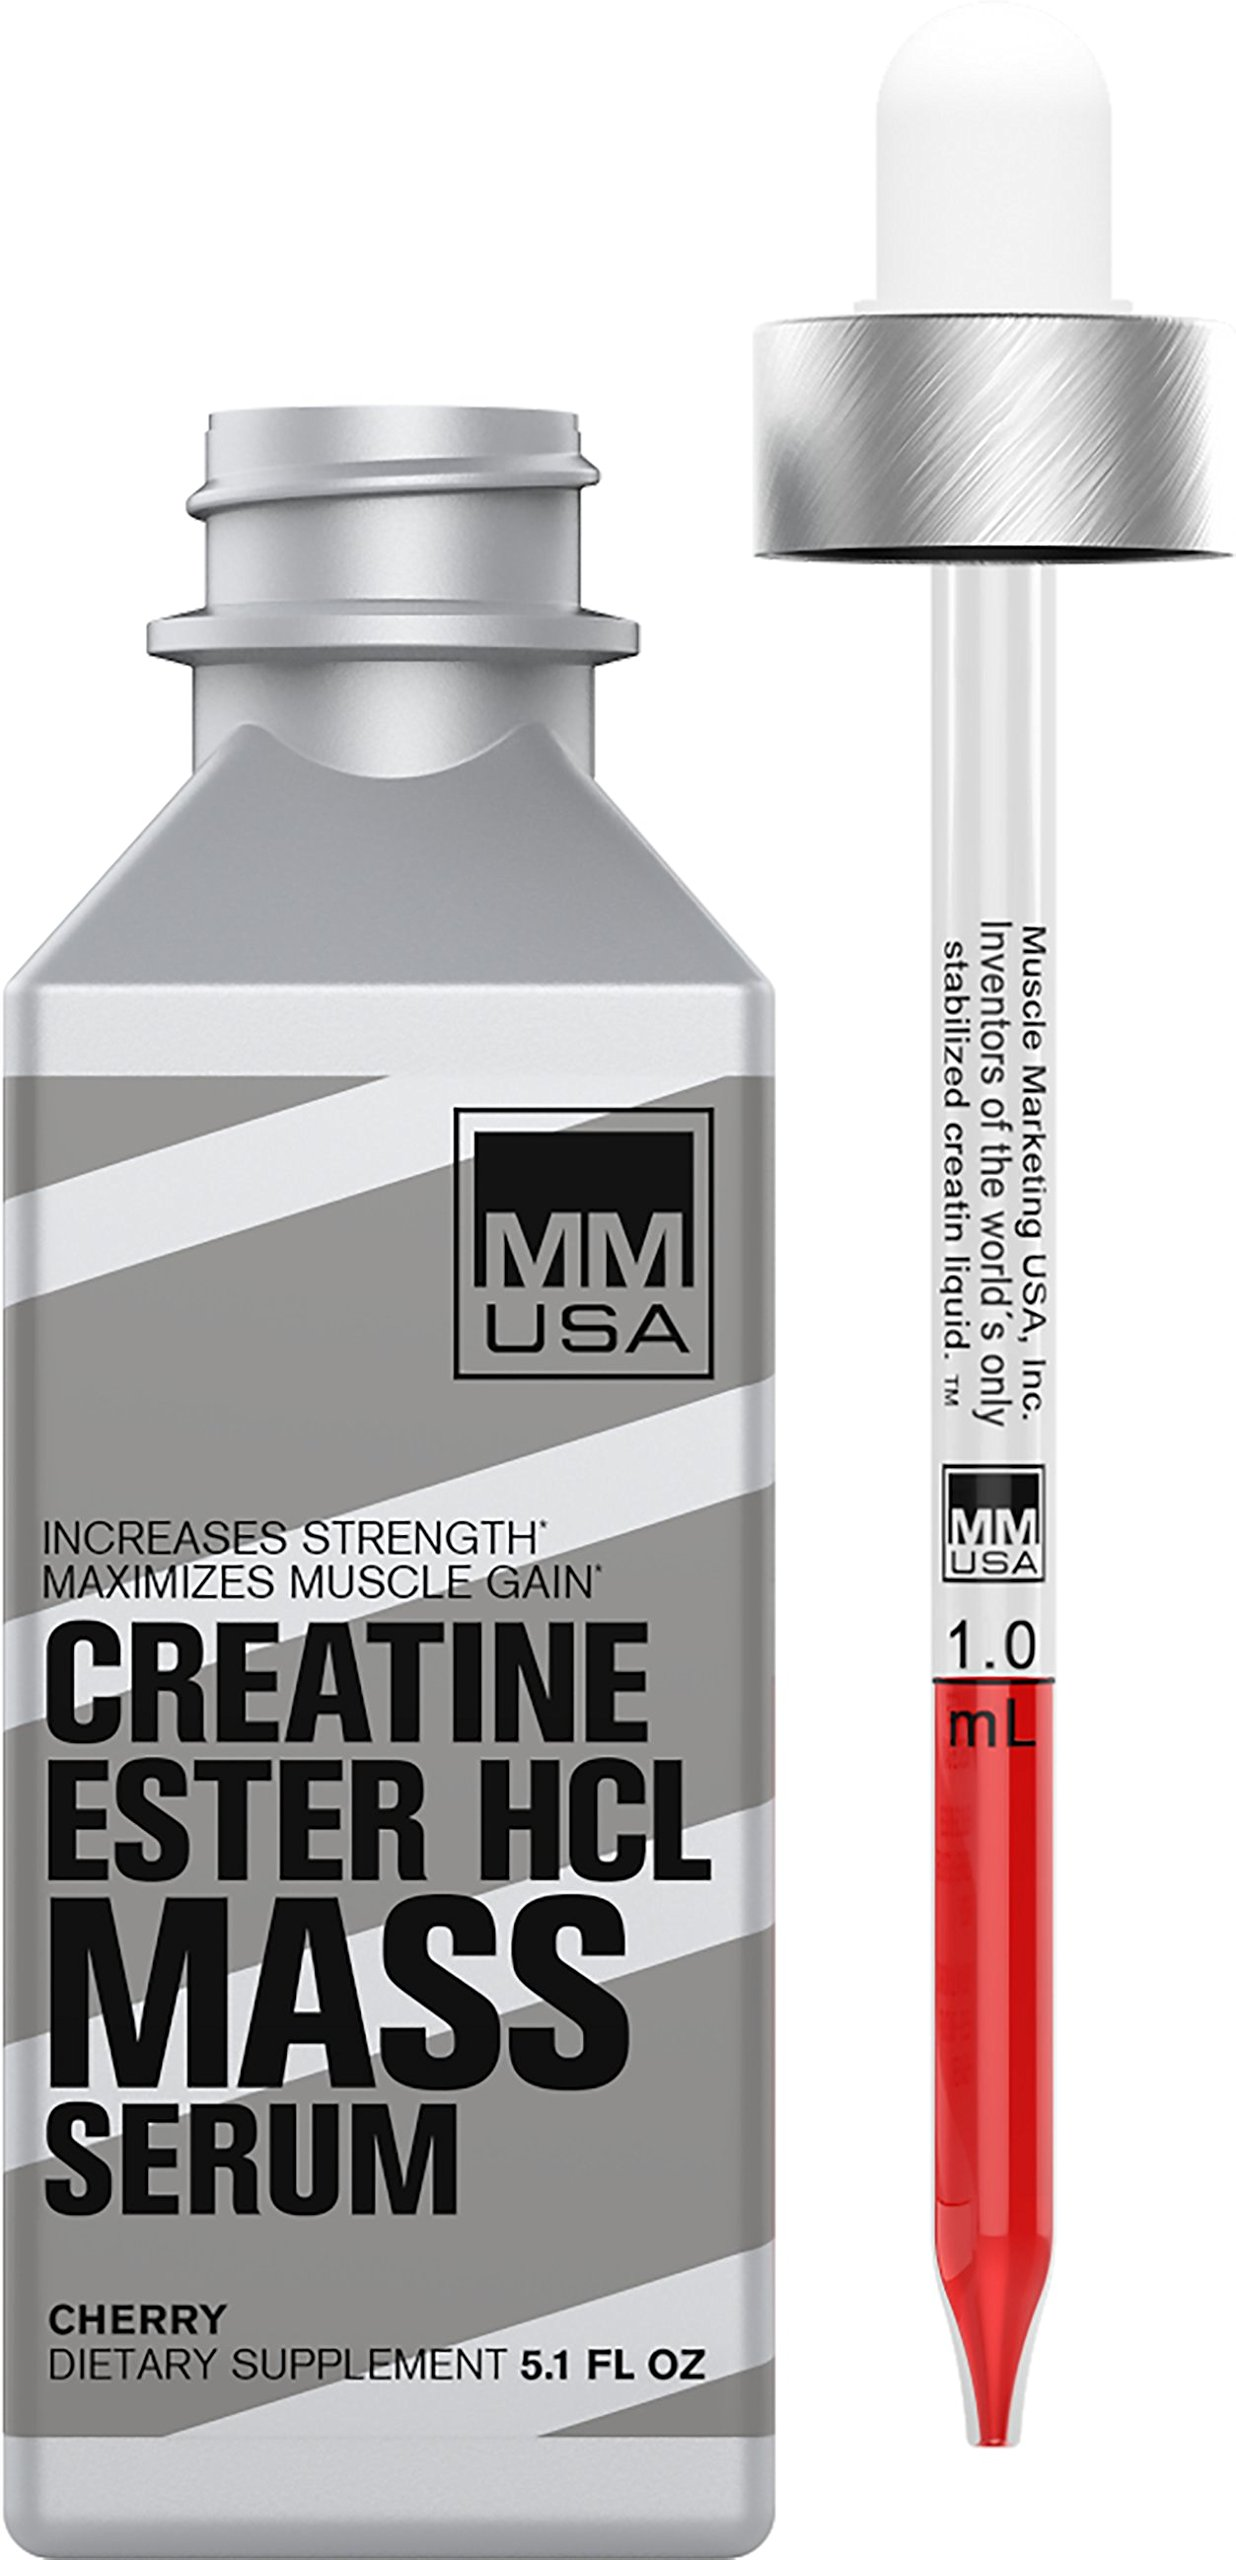 MMUSA HCL Muscle Mass Lean Muscles Gainer & Creatine Energy Booster | Strength Pre-Workout Liquid Serum ● Weightlifting Stamina and Energy from L-Carnitine, L-Glutamine and Nitric Oxide by MMUSA